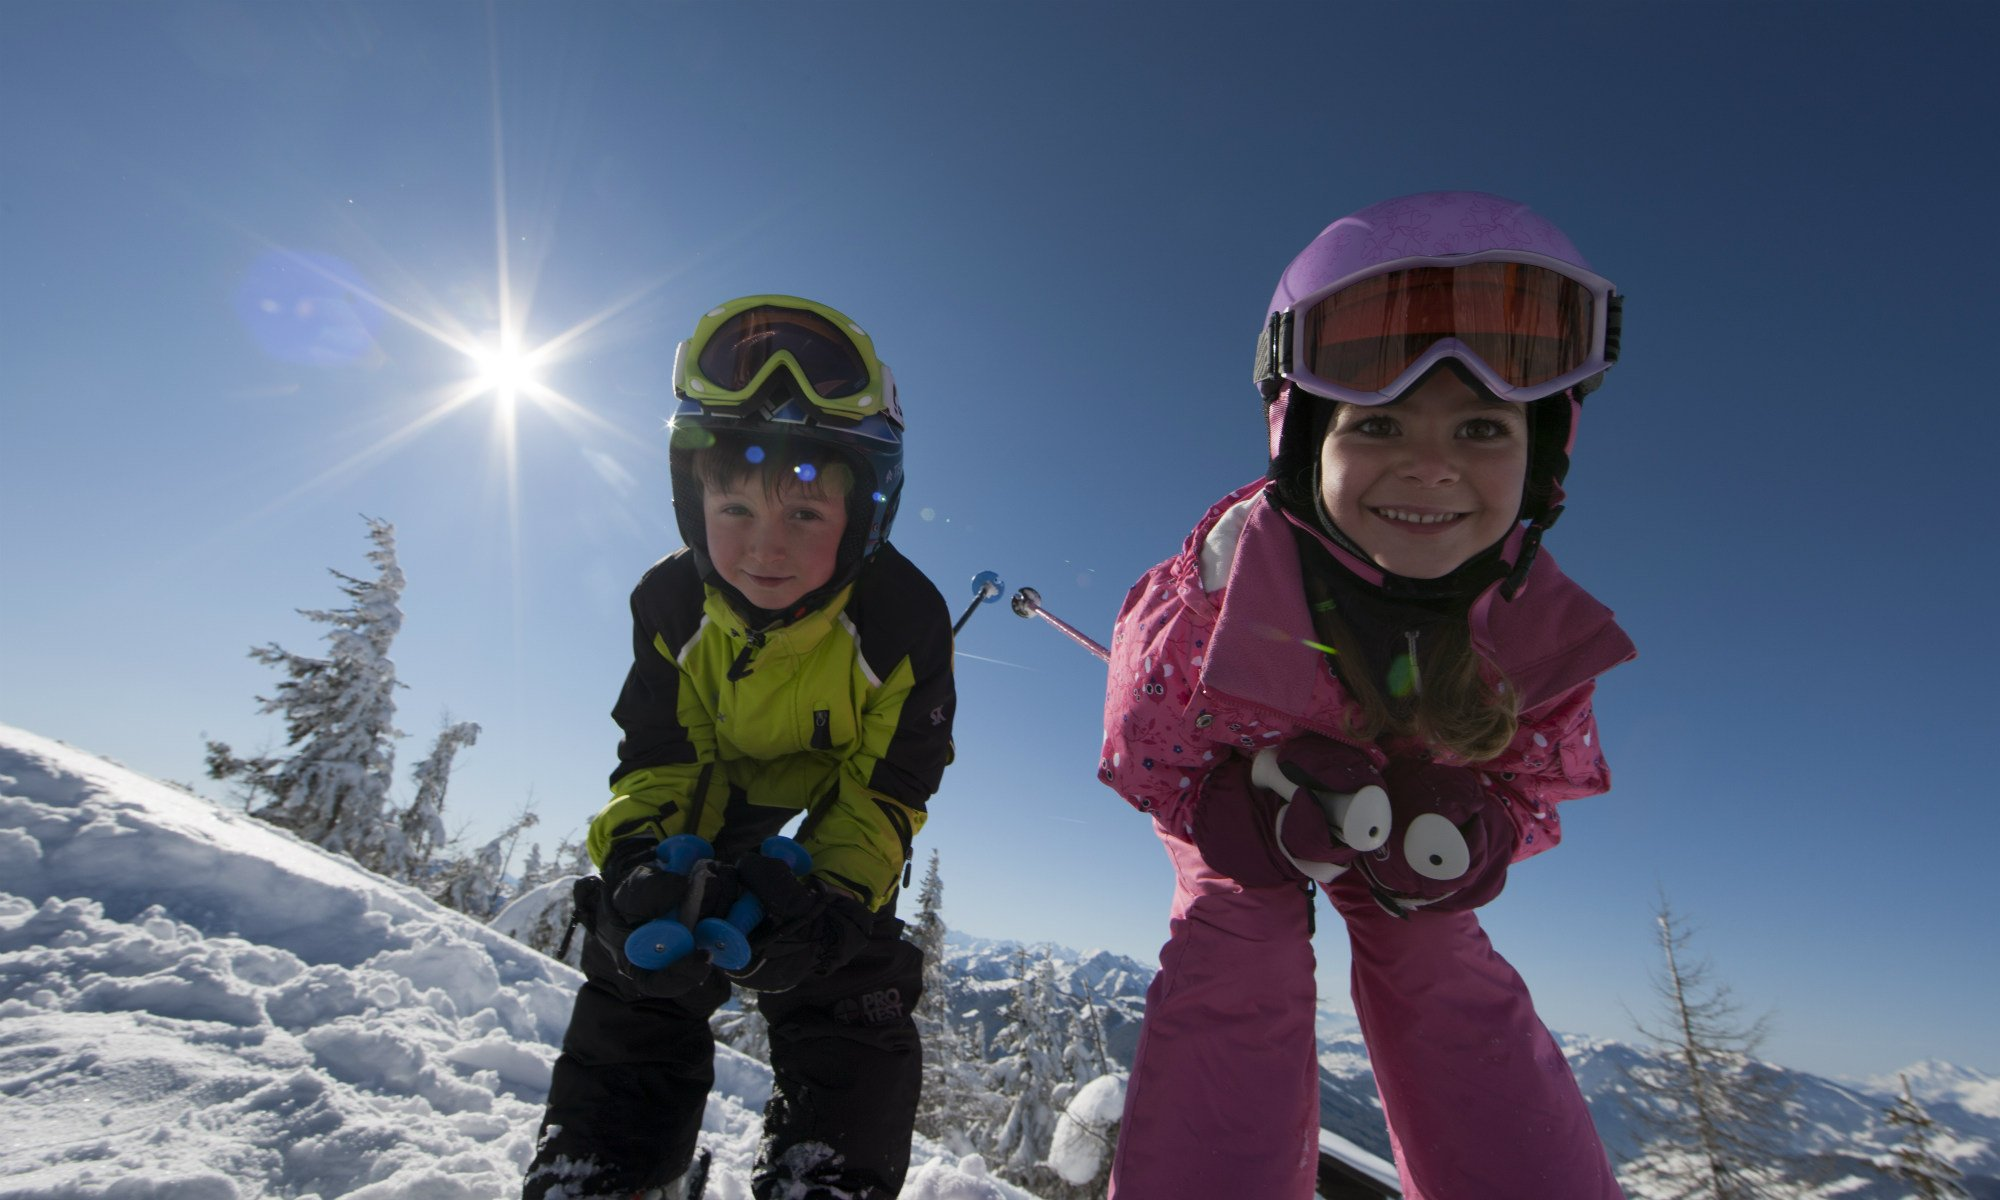 Two 6-year-old children having fun while skiing.